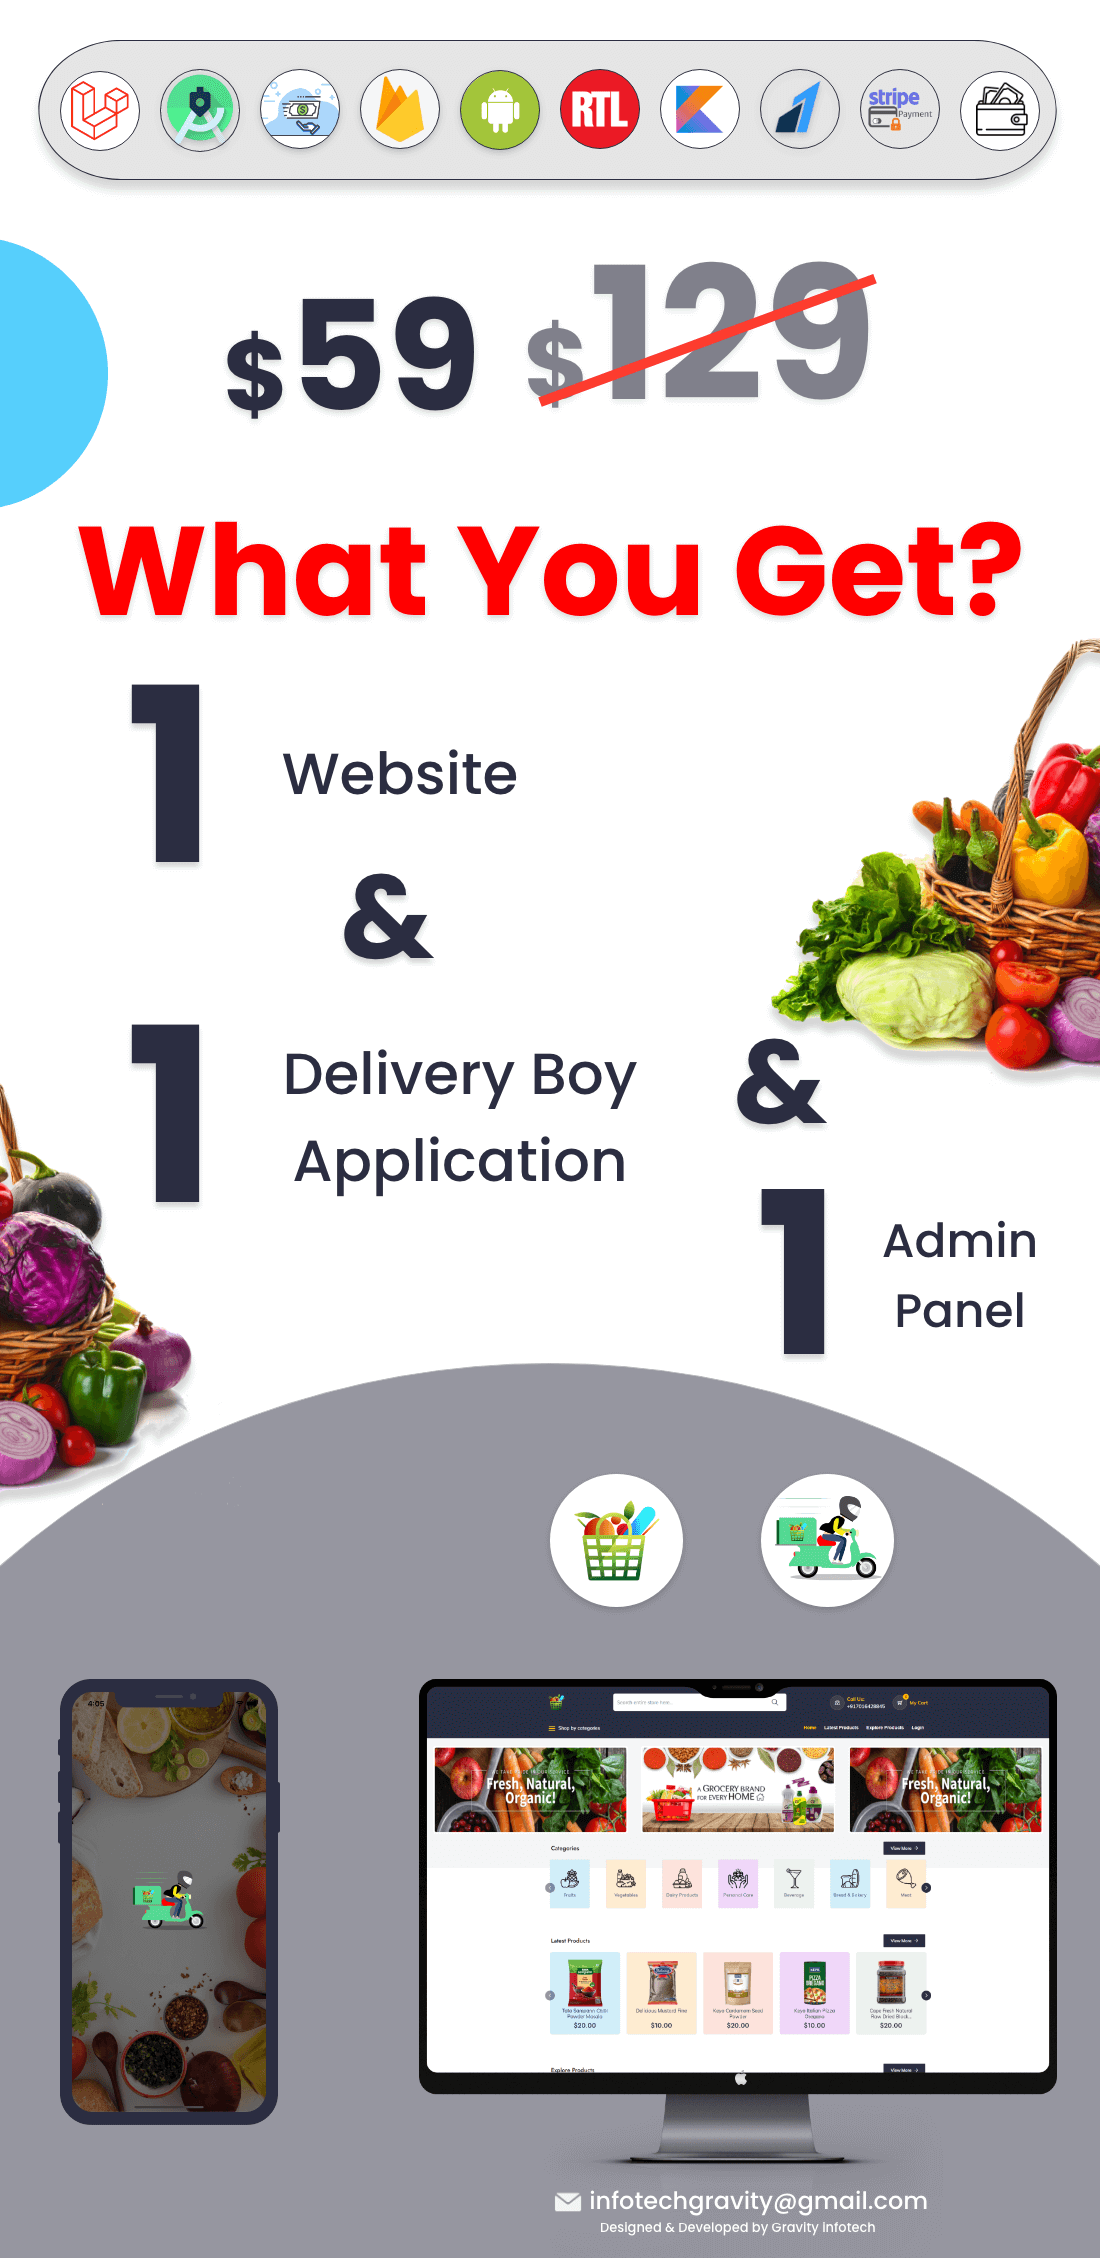 Single Grocery, Food, Pharmacy Store Website & Delivery Boy Application With Admin Panel - 3